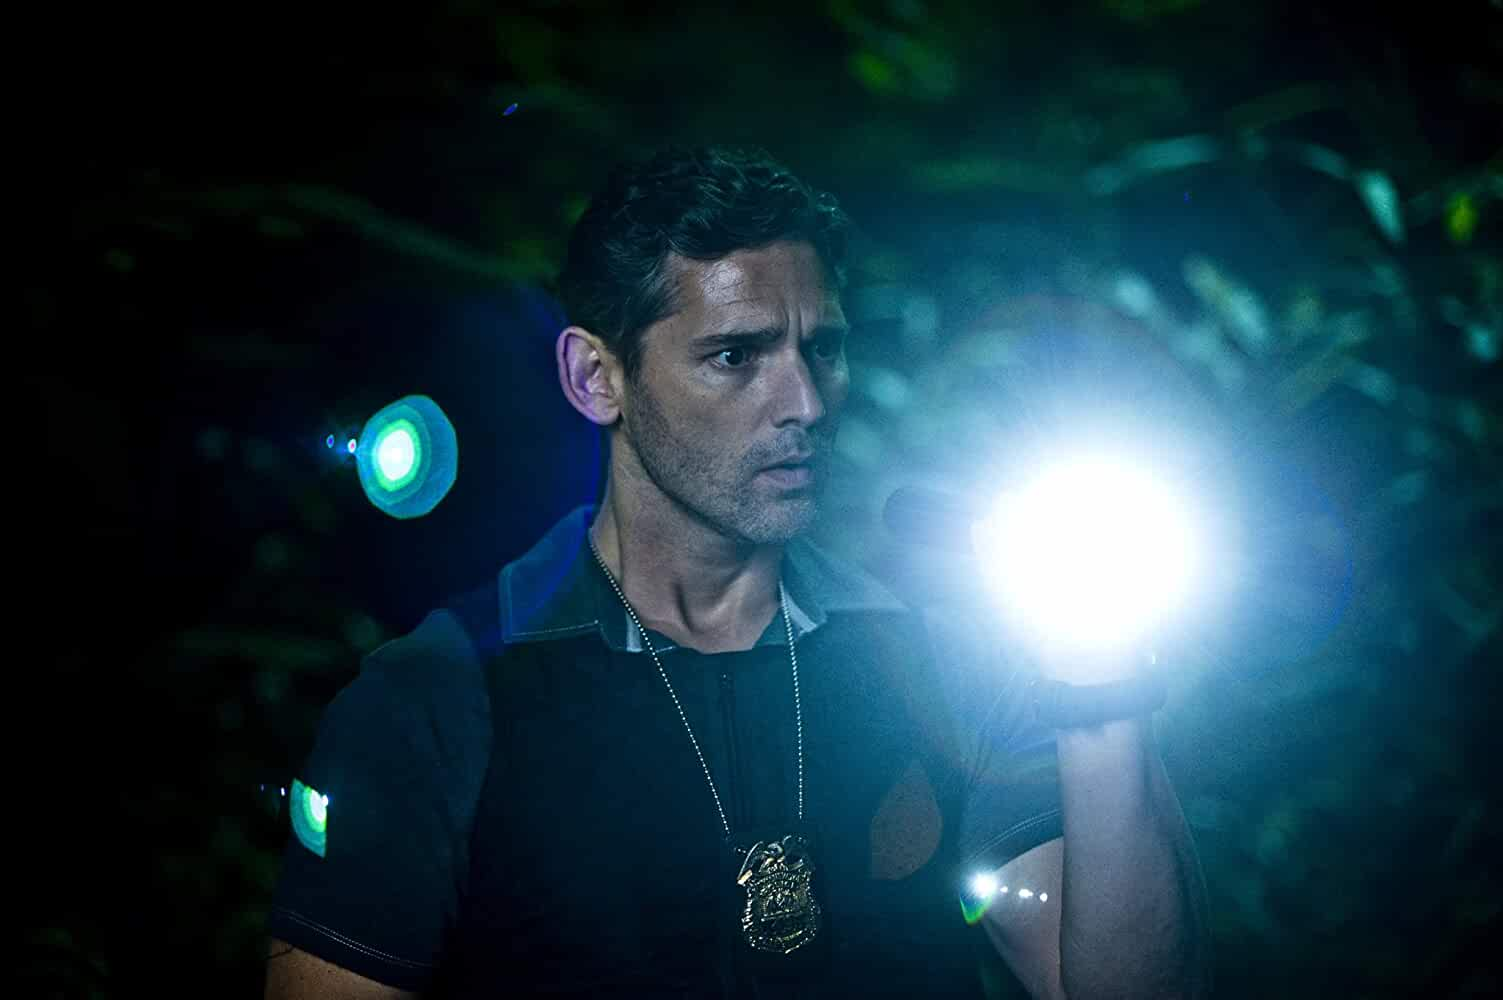 Eric Bana in Deliver Us from Evil (2014)